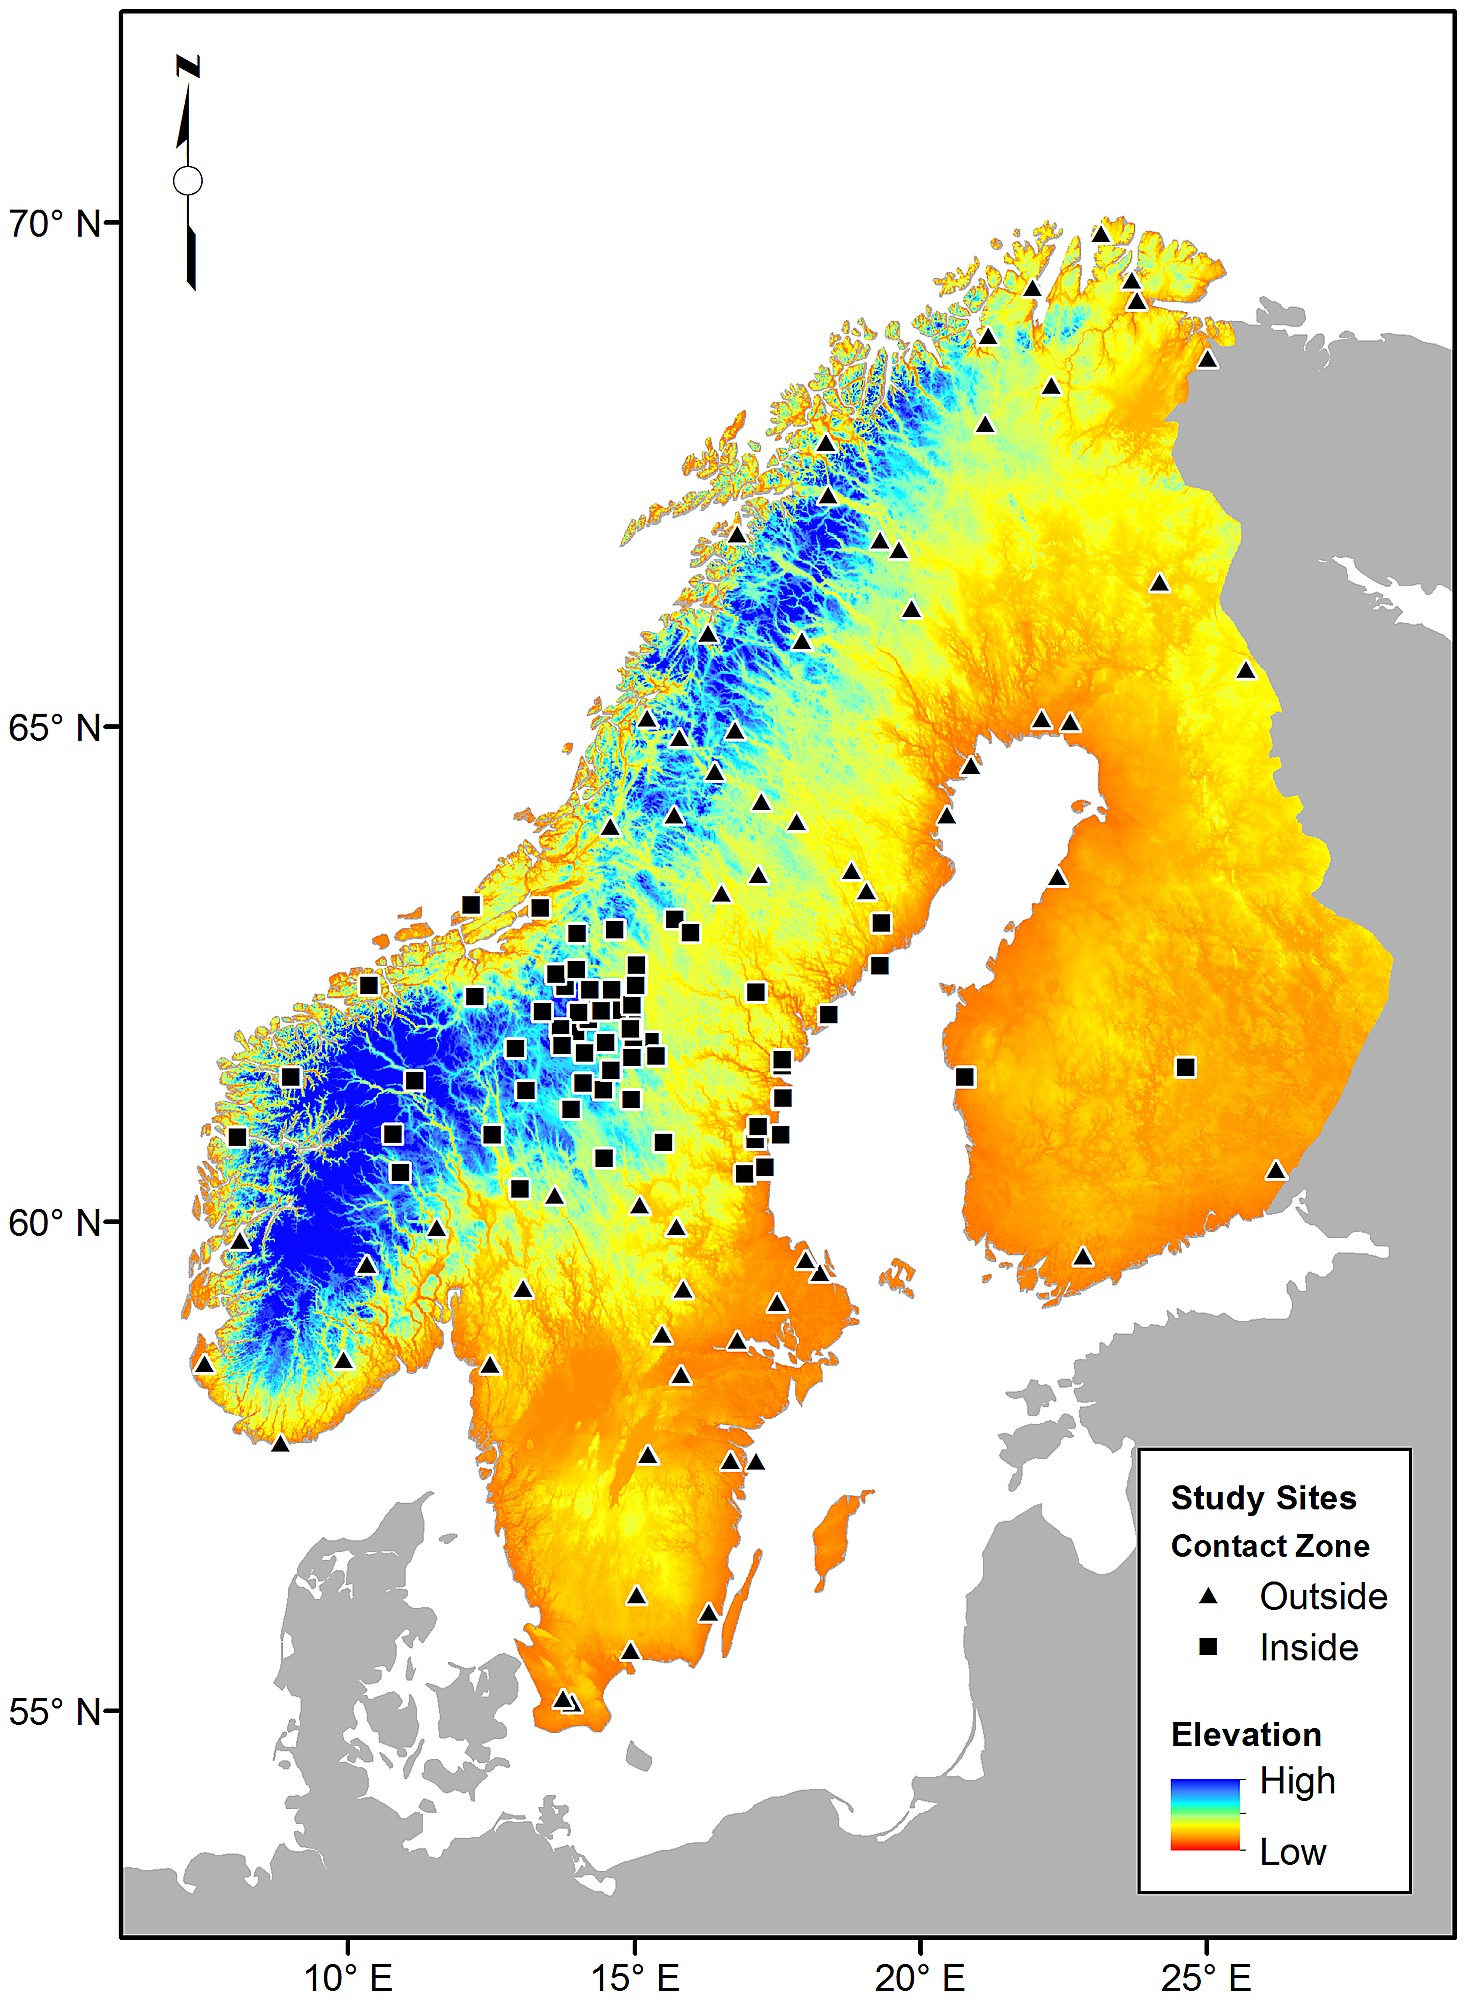 Maps Of Scandinavia With Backgrounds Representing A Digital - Elevation locations